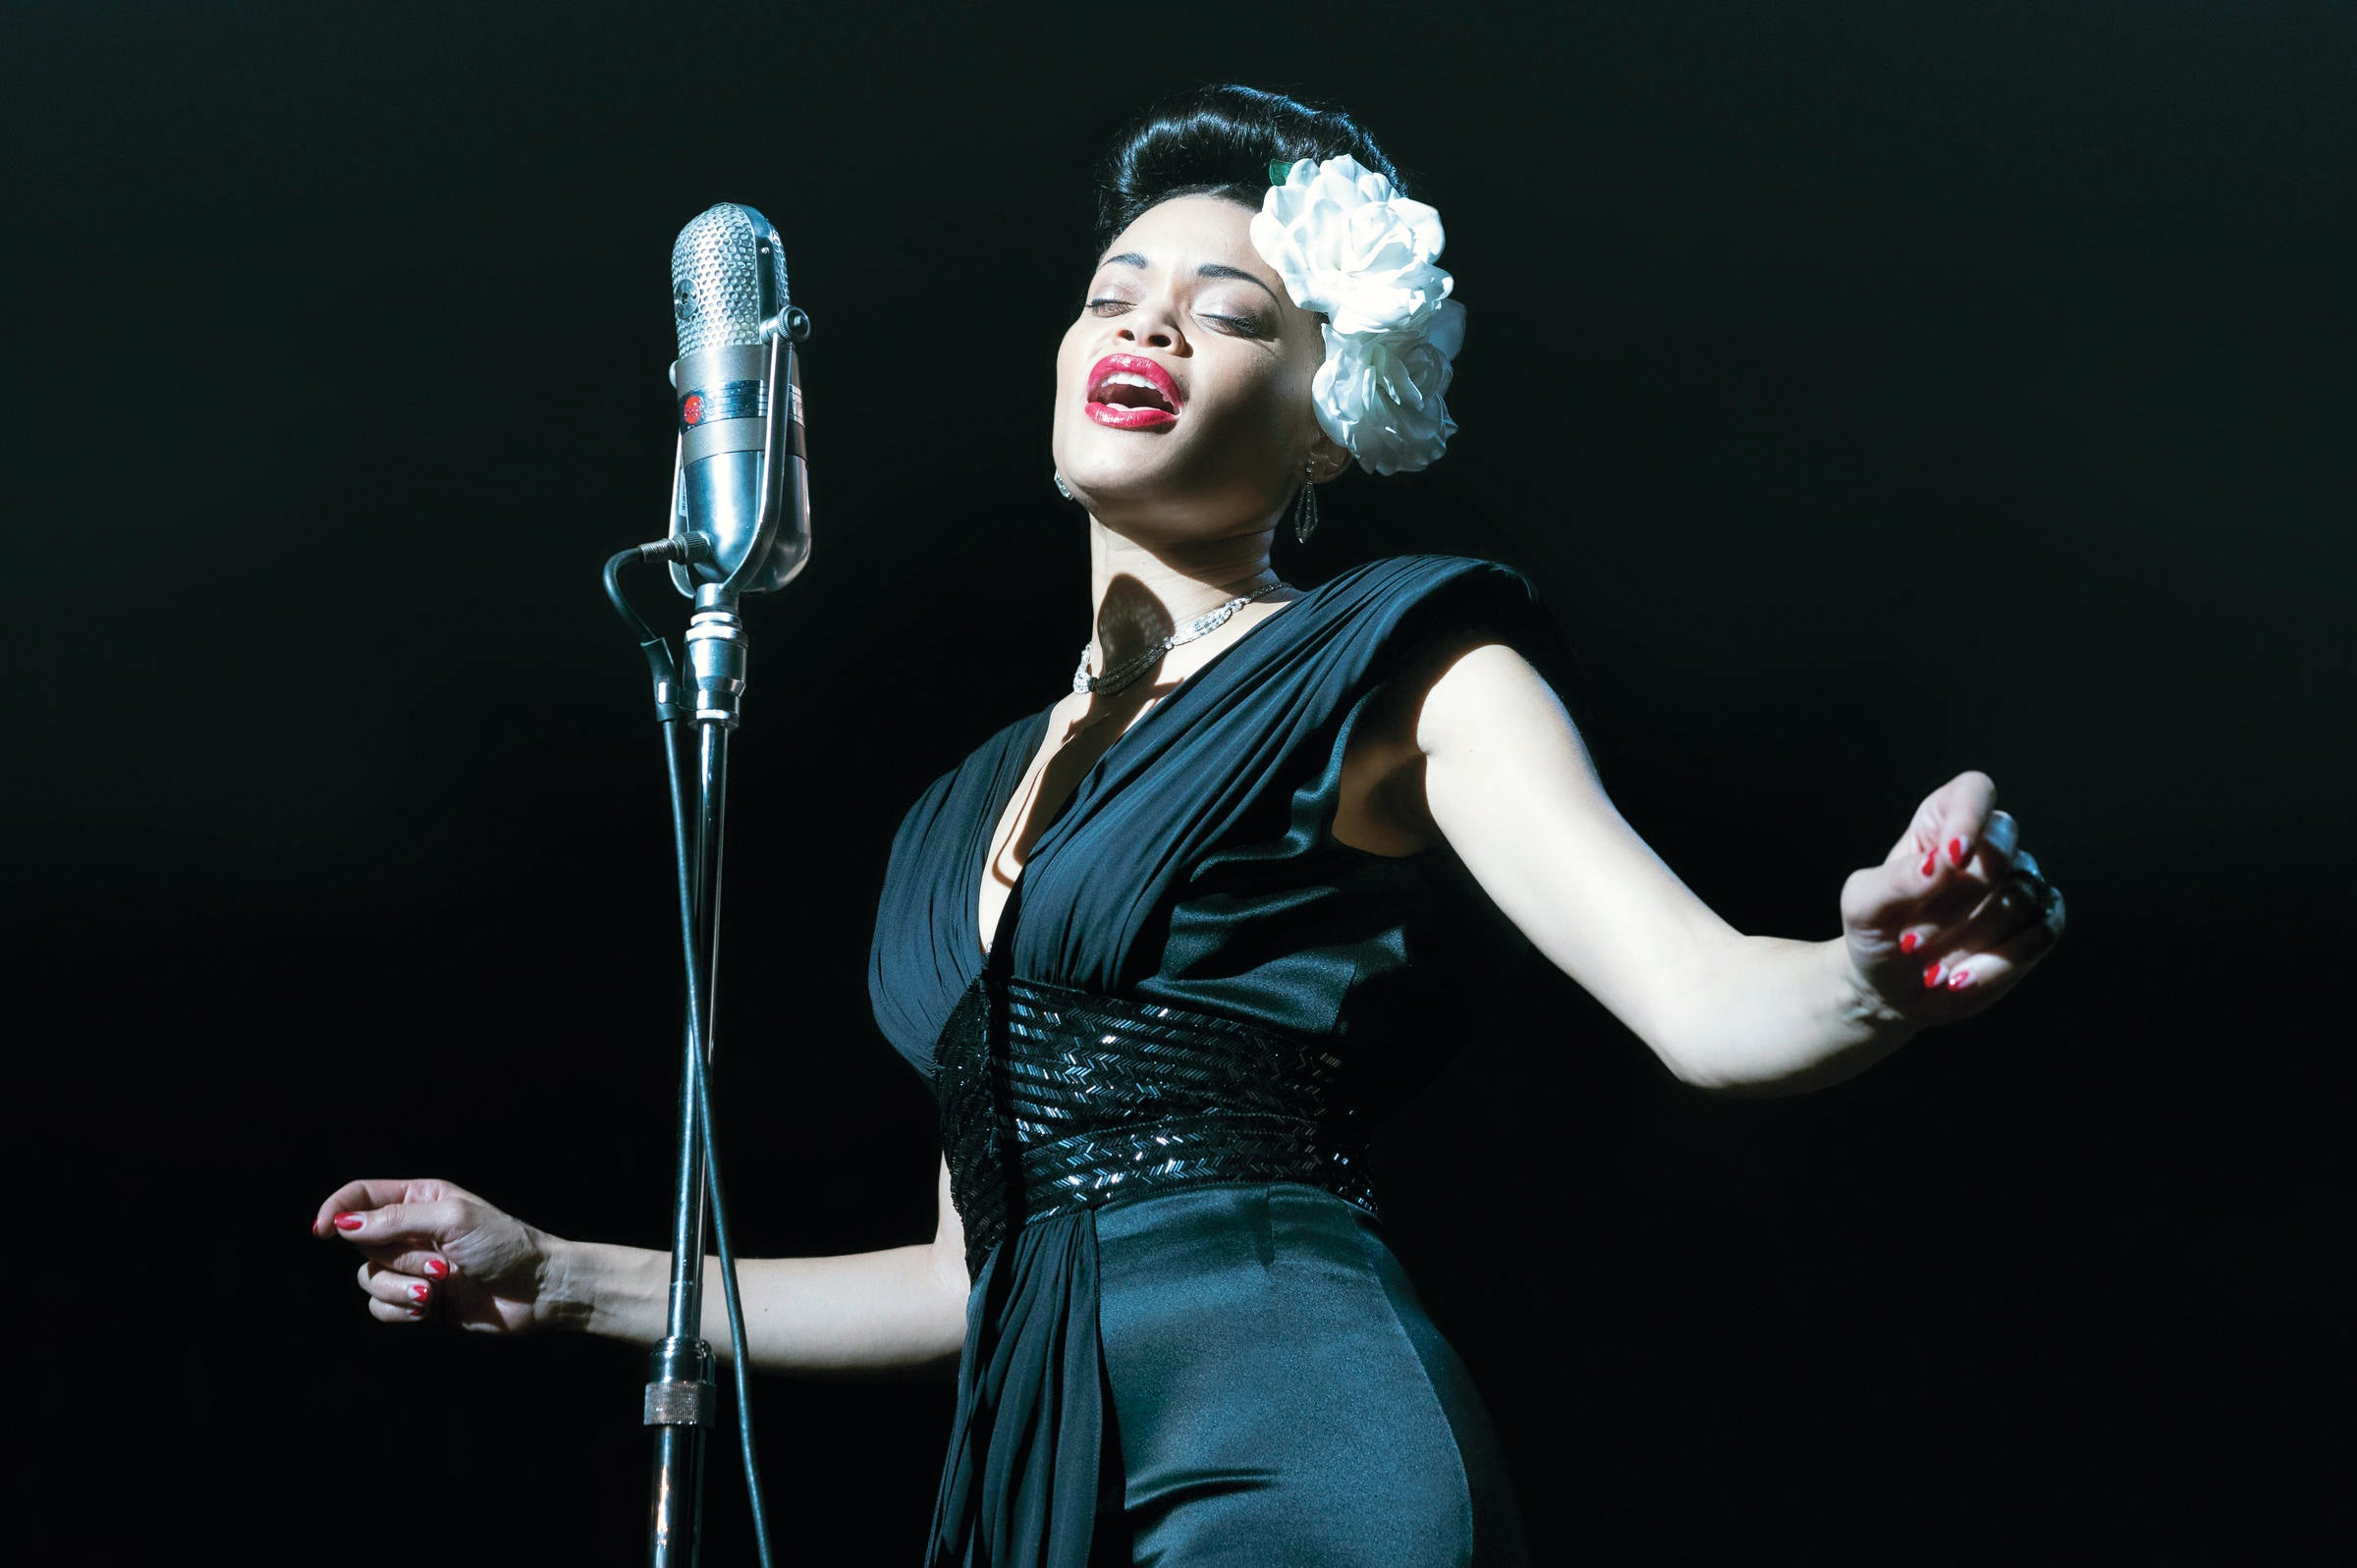 The United States vs Billie Holiday dramatises the racially motivated campaign waged against the singer